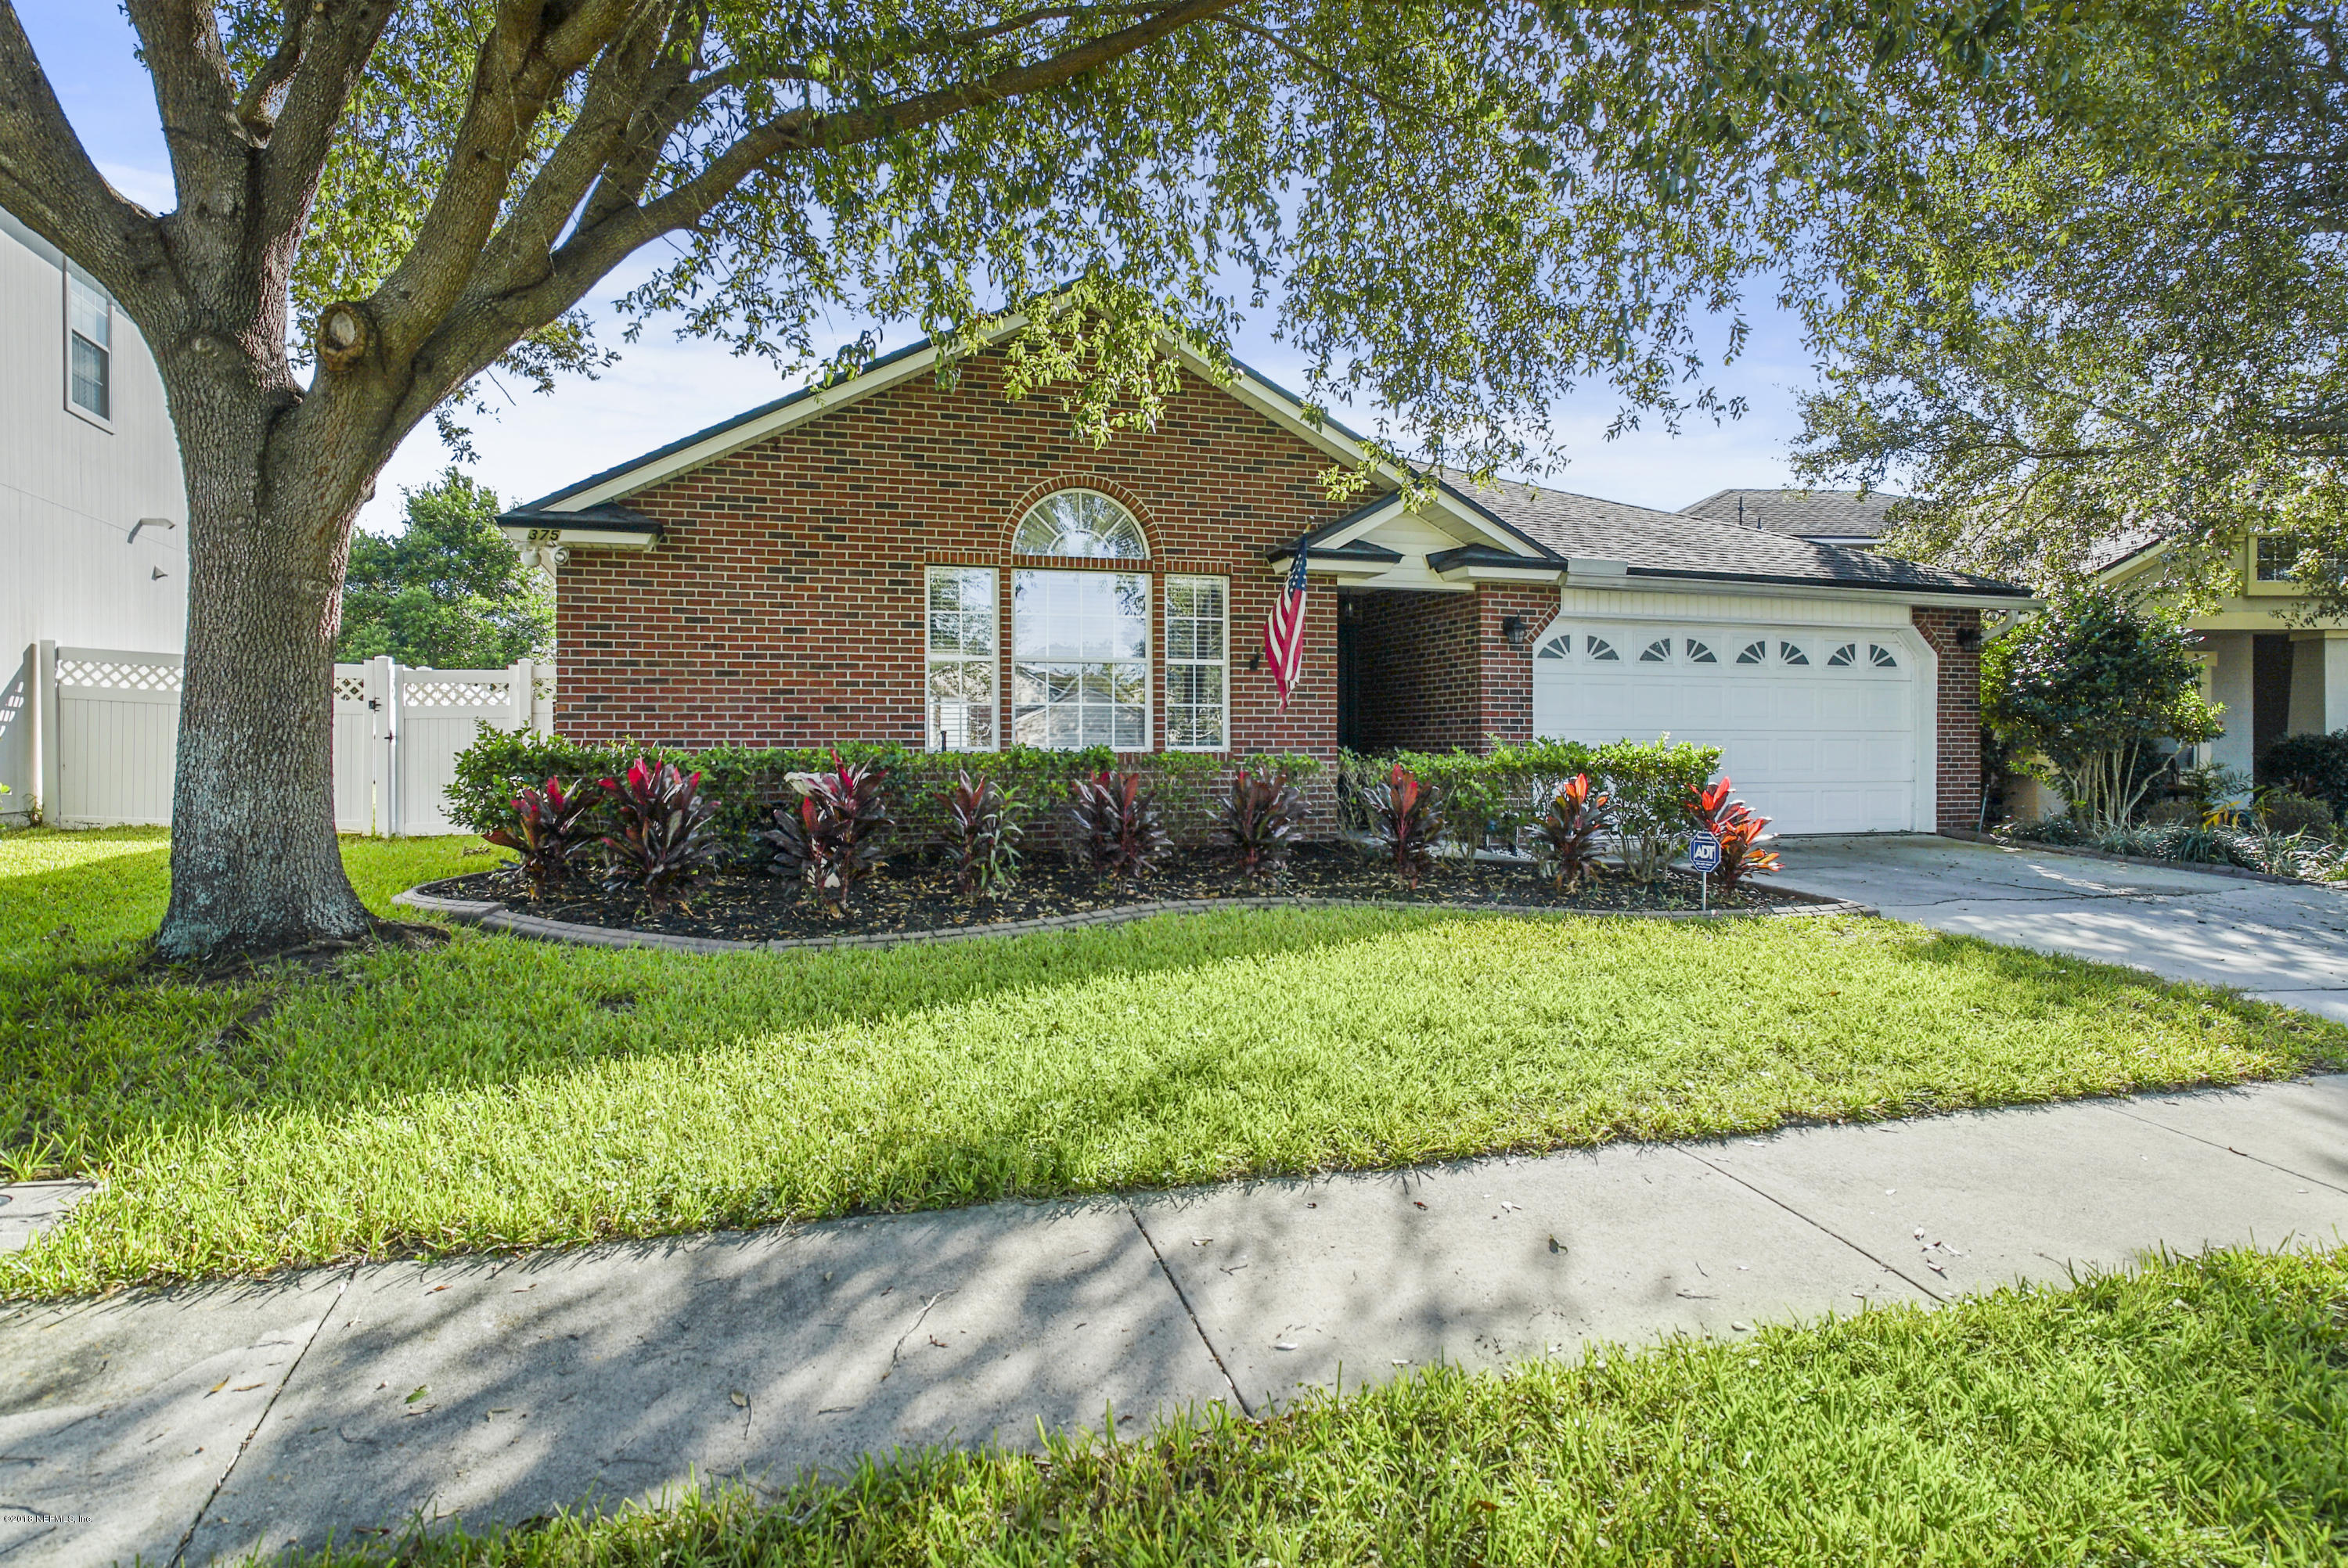 375 BRIER ROSE, ORANGE PARK, FLORIDA 32065, 4 Bedrooms Bedrooms, ,2 BathroomsBathrooms,Residential - single family,For sale,BRIER ROSE,964626